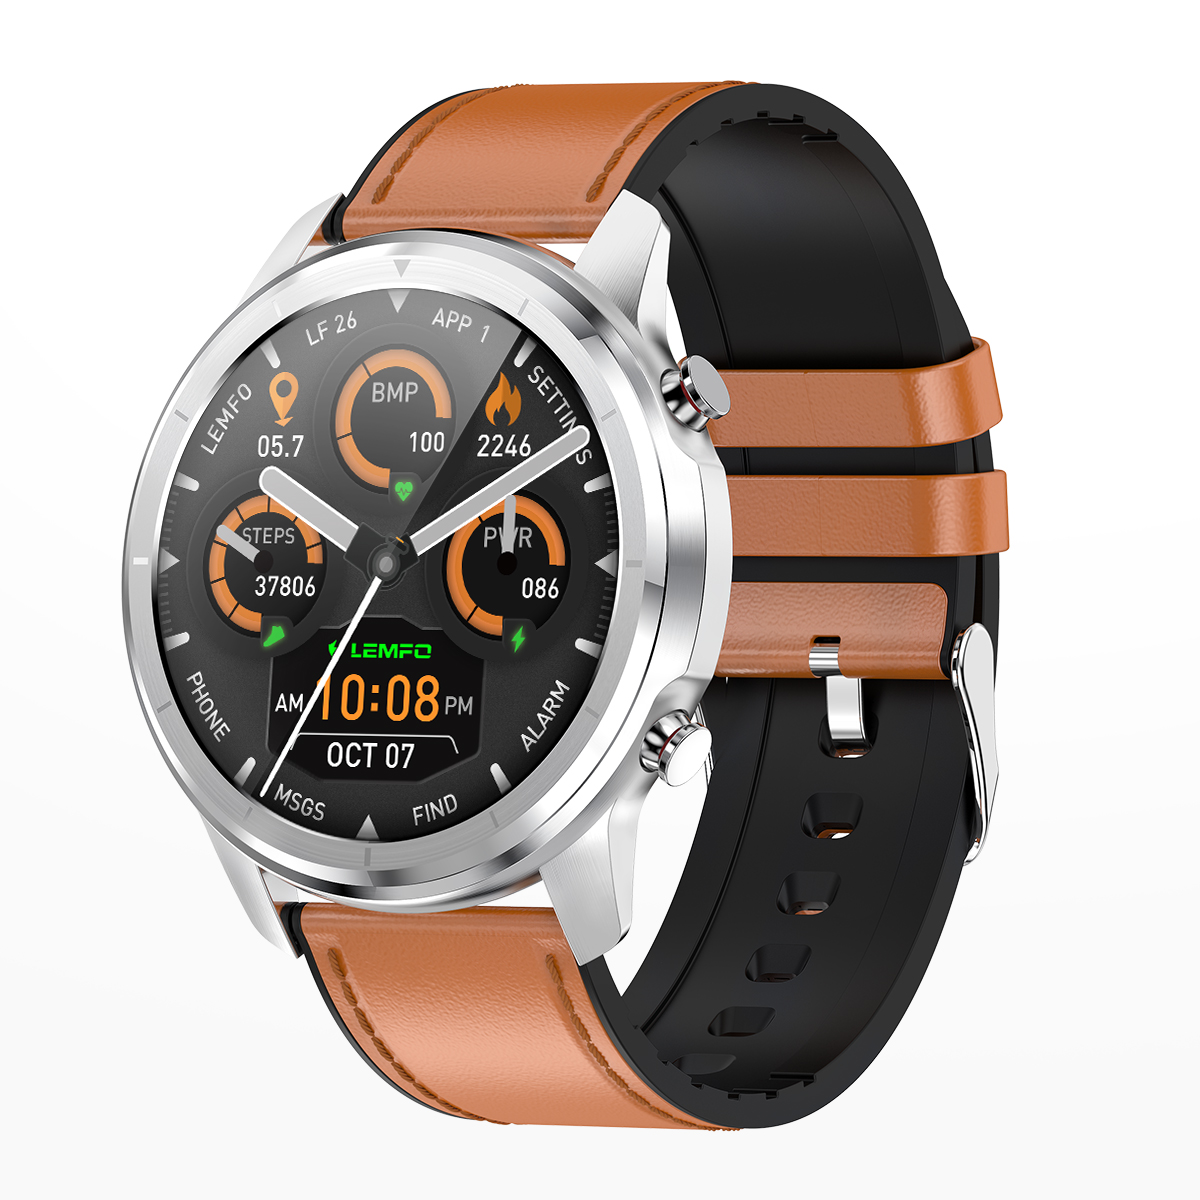 Original LEMFO LF26 Round Dial Smart Bracelet 150mAh IP67 Waterproof Bluetooth 5.0 1.3 inch Full HD IPS Screen Watch Silver_Brown leather strap